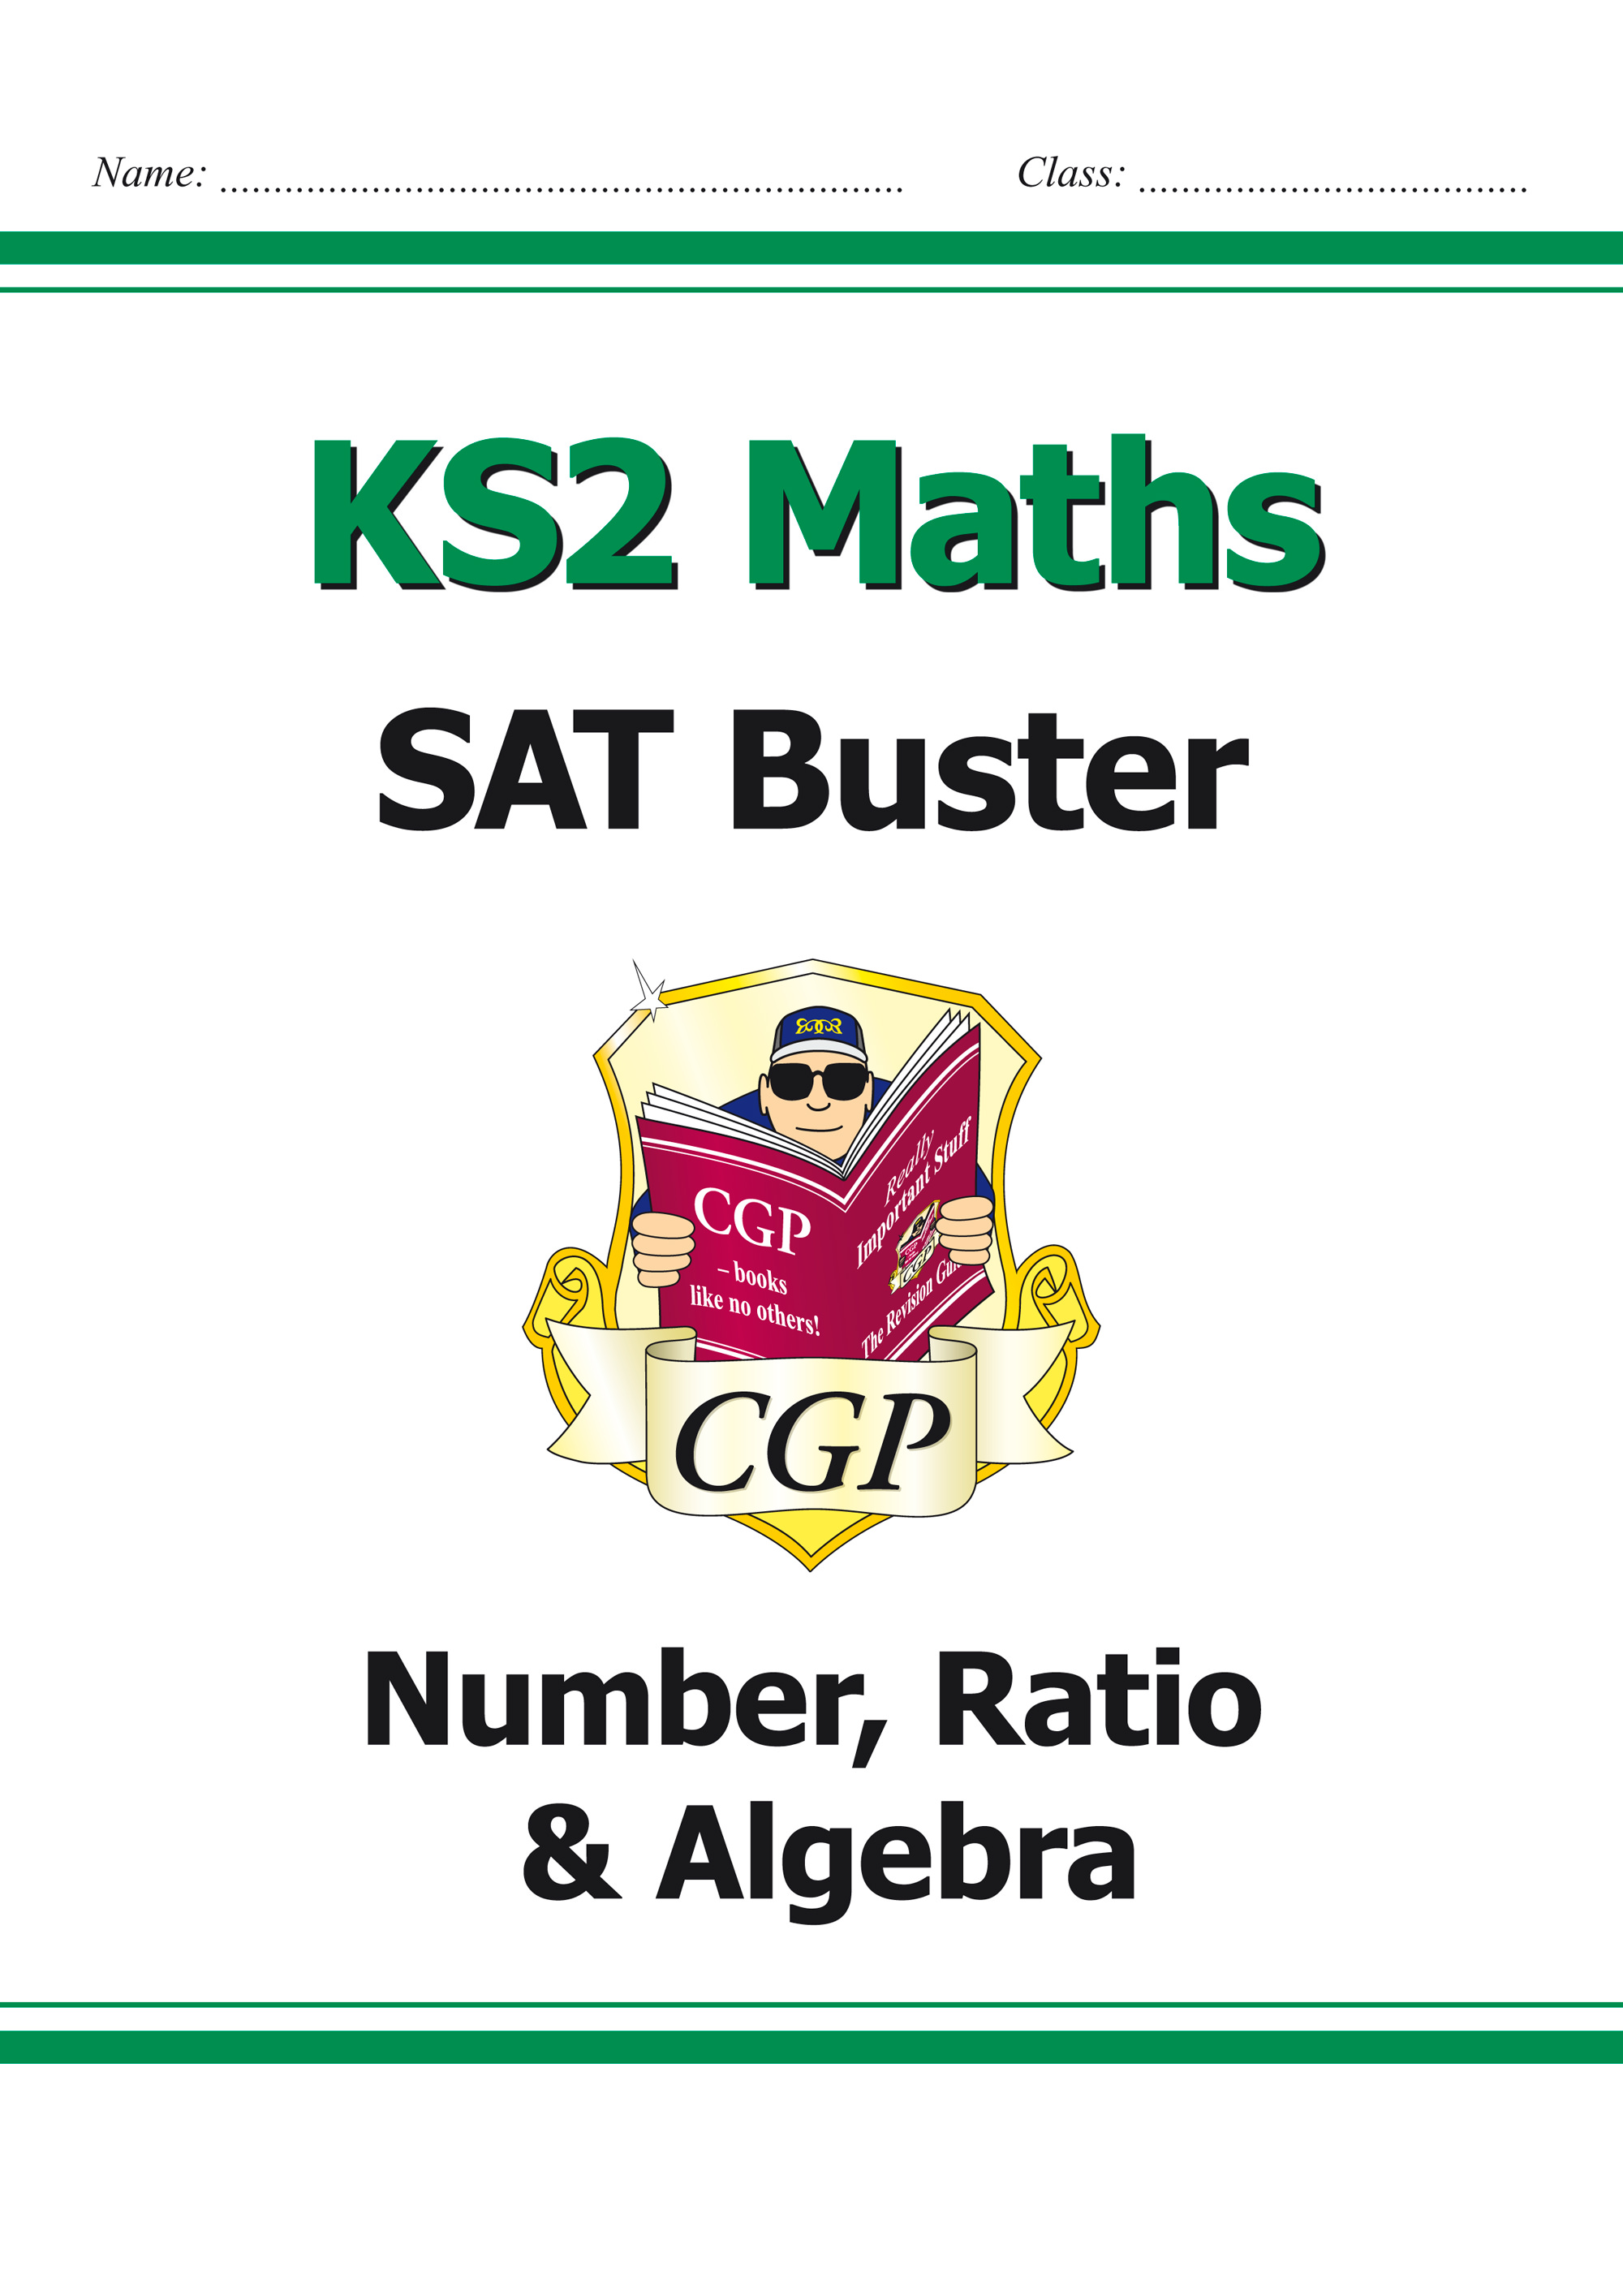 KS2 Maths SAT Buster: Number, Ratio & Algebra Book 1 (for the 2020 tests)